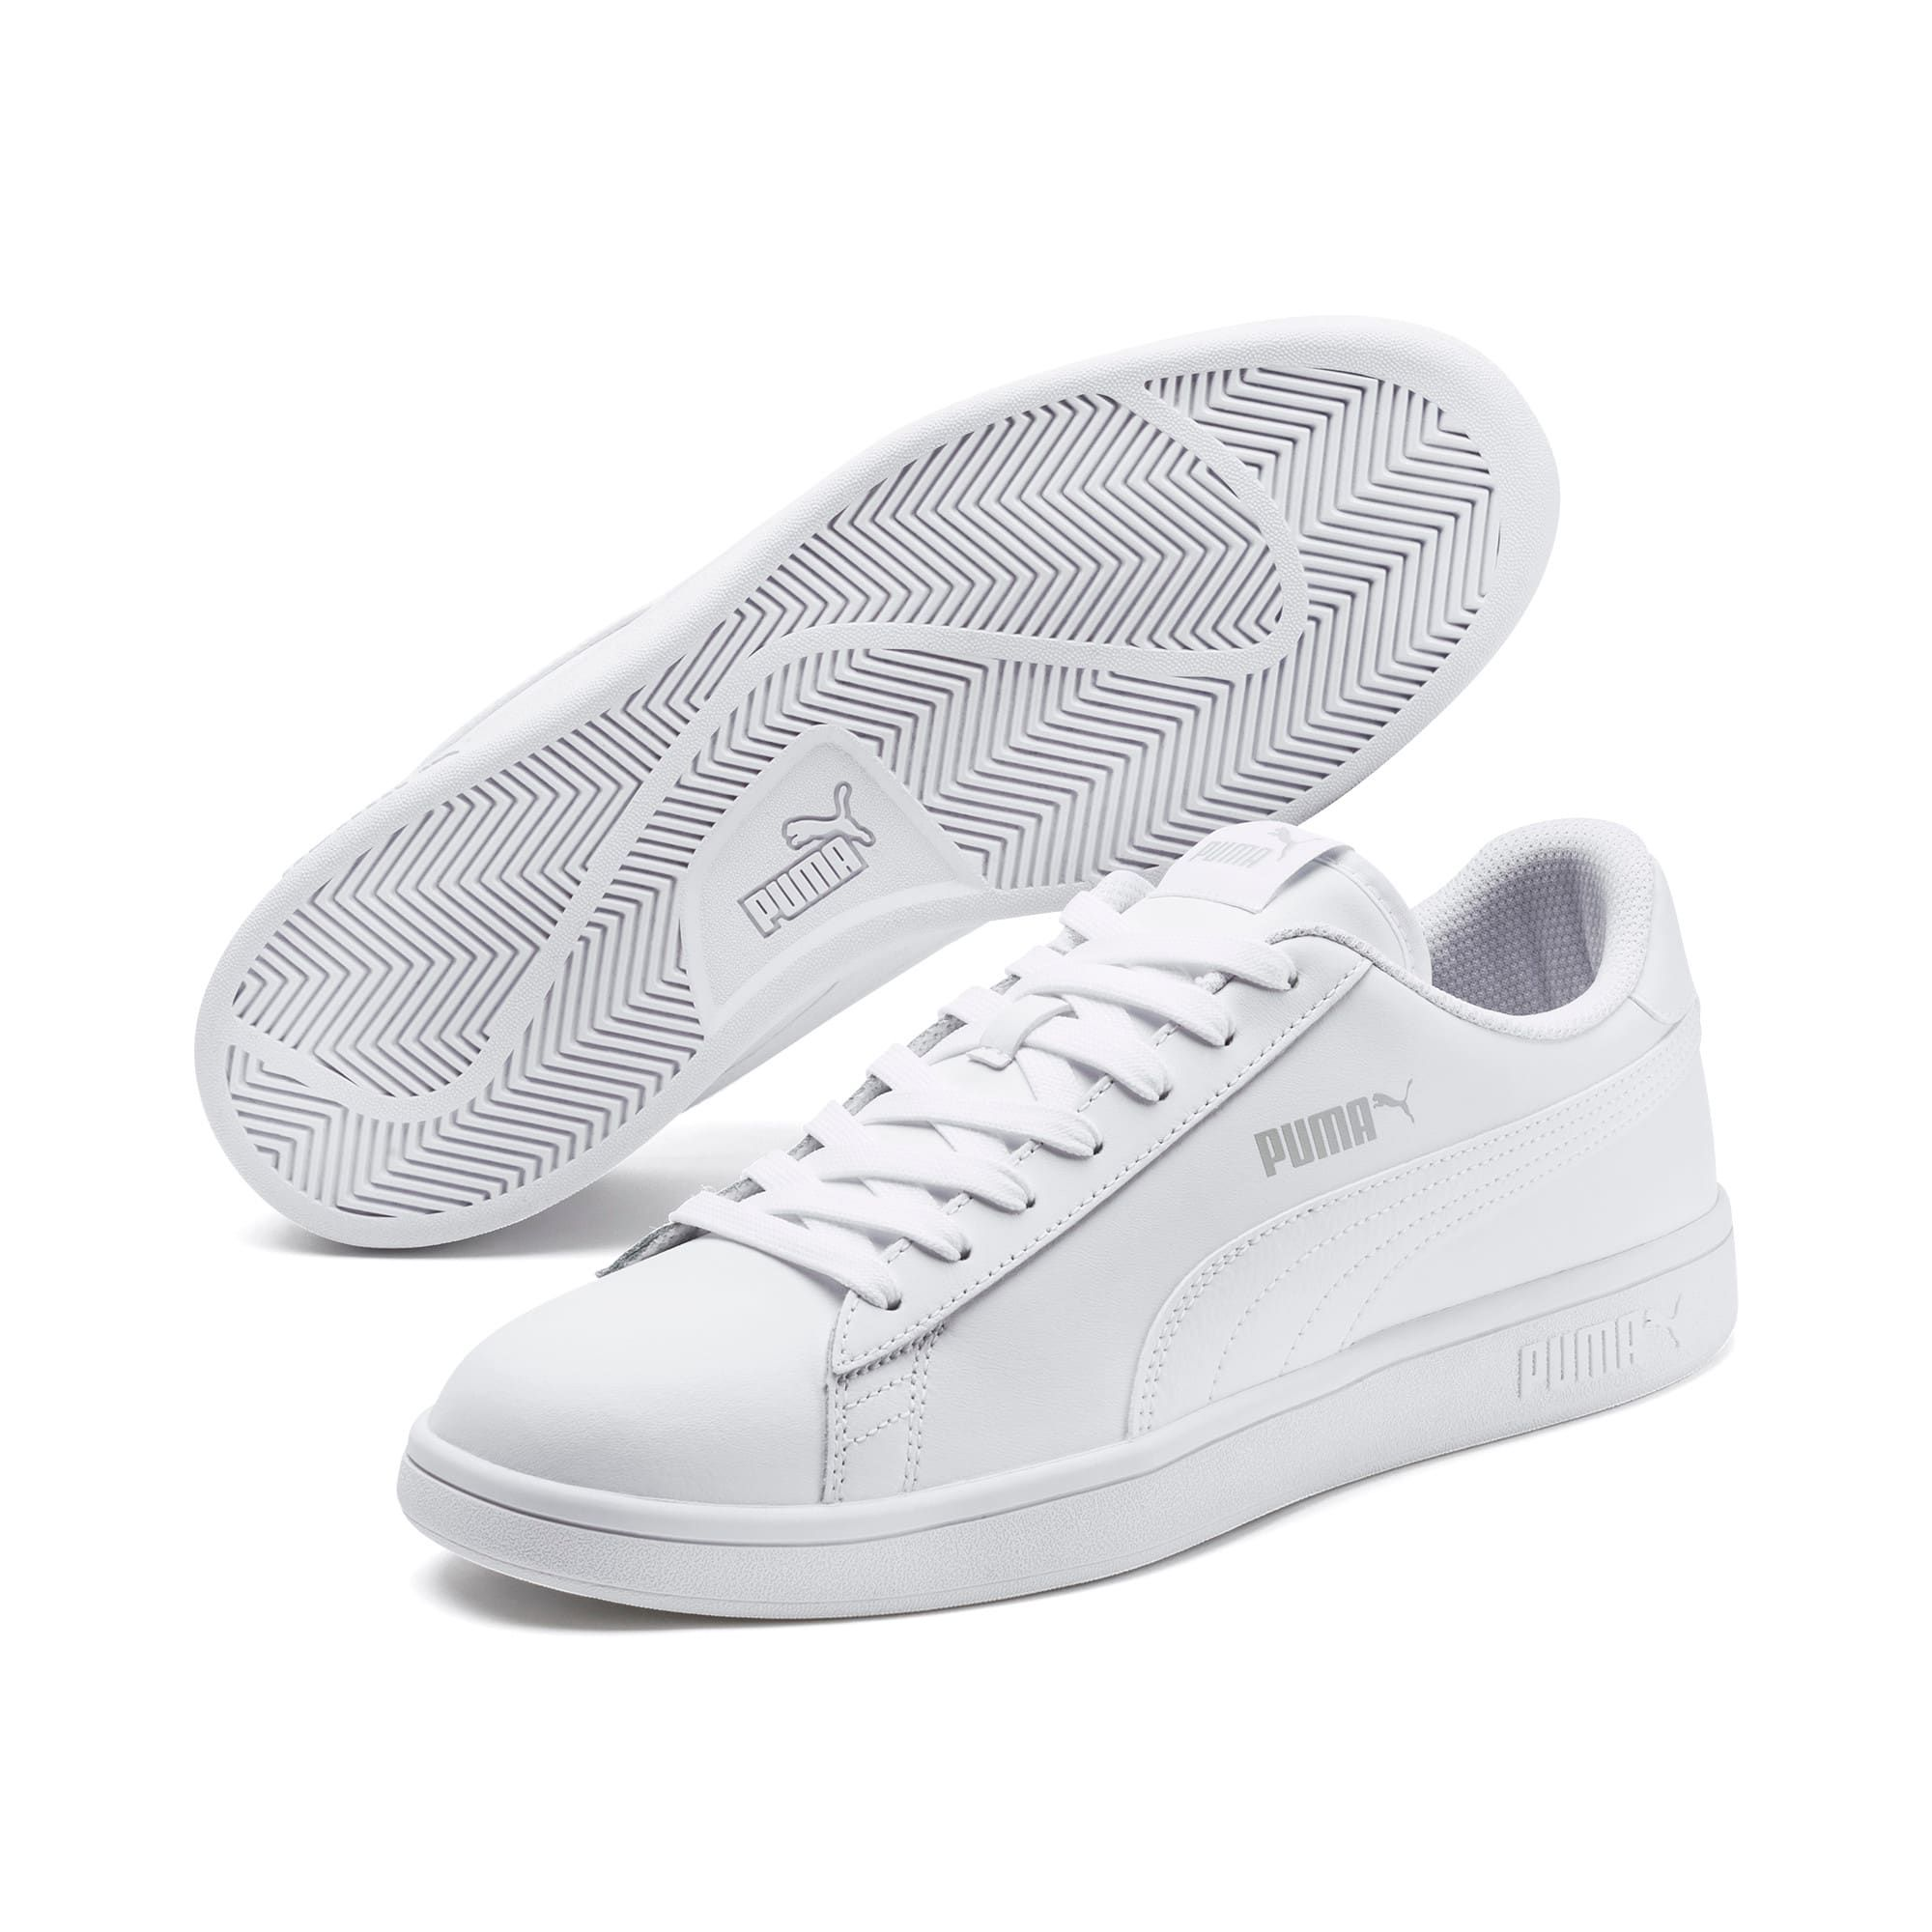 PUMA Smash V2 Leather Trainers in White size 10.5 | White